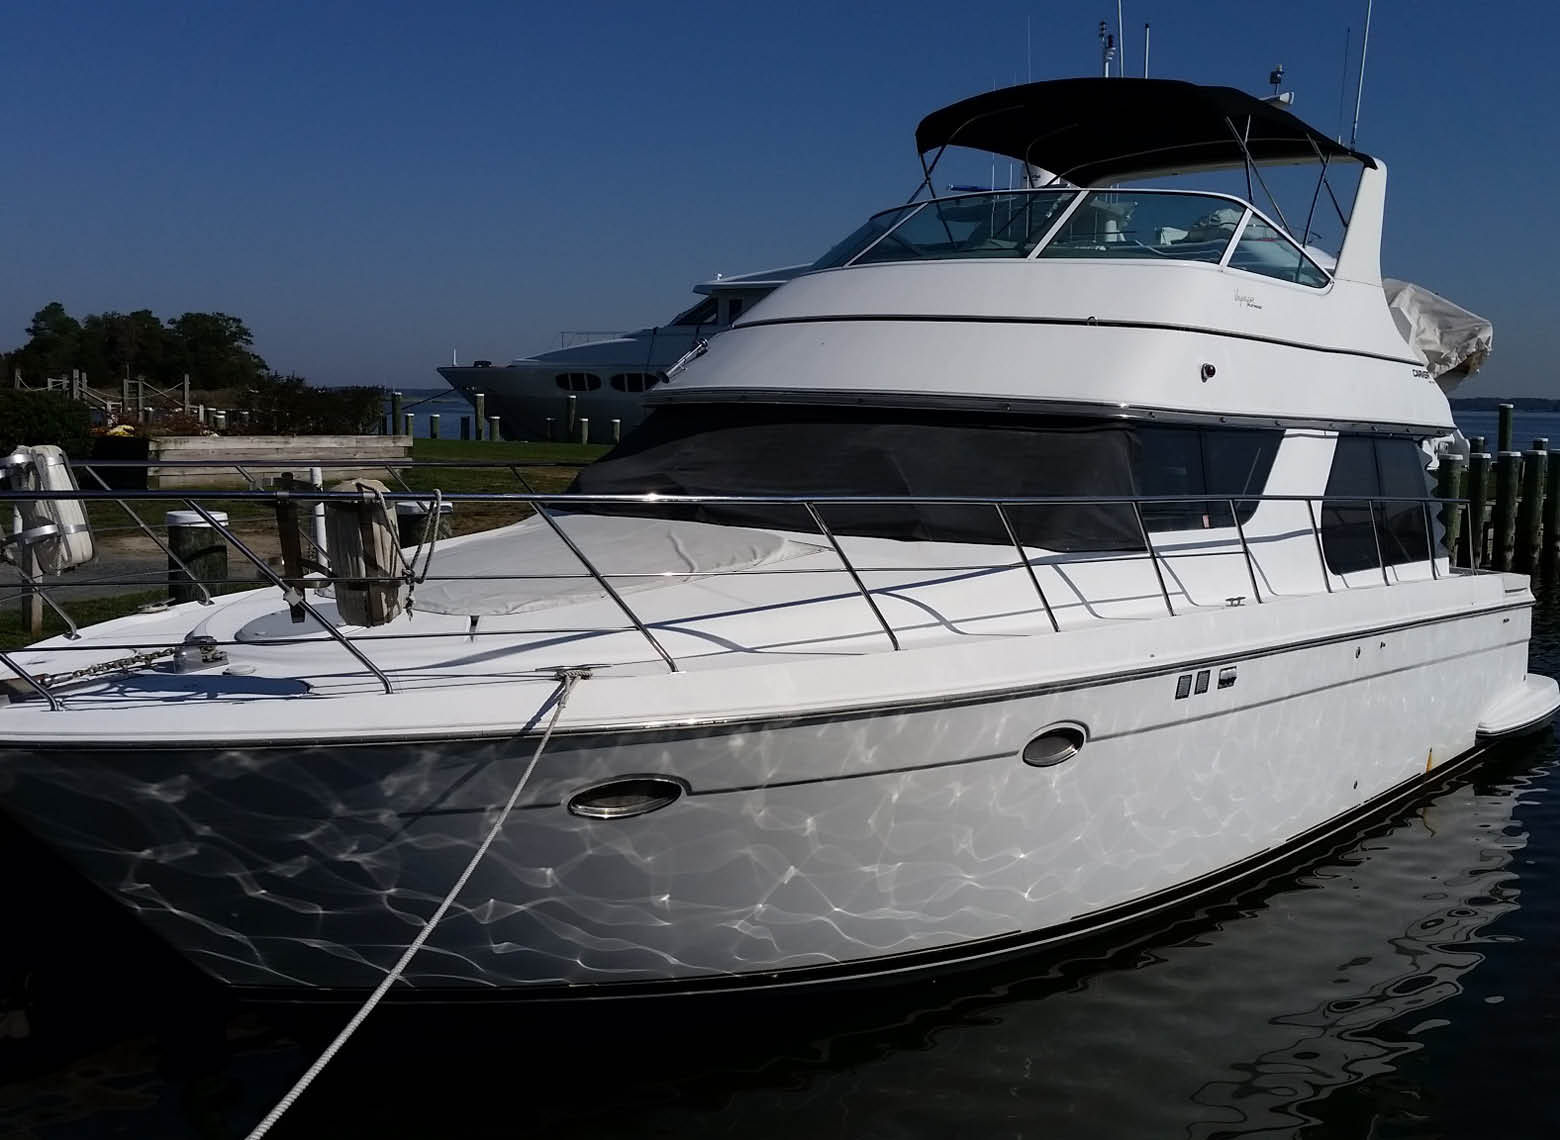 Boat for sale — Carver 450 Voyager Motor Yacht